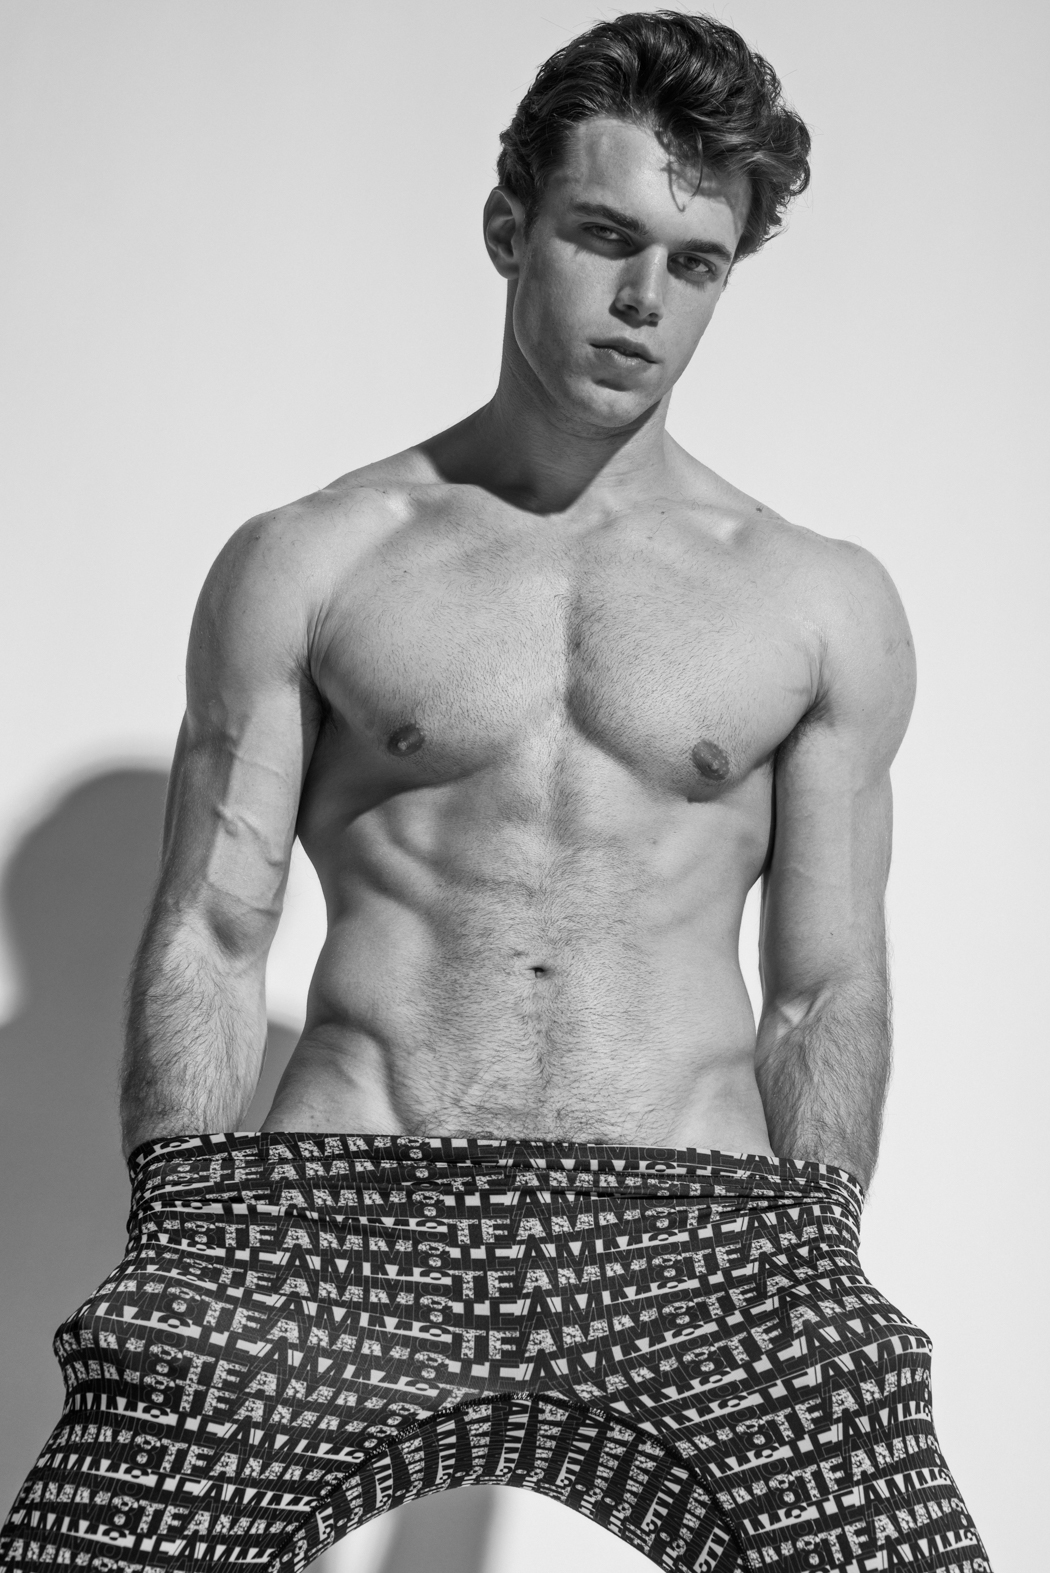 Adon Exclusive: Model Pete Furmato By Frank Louis